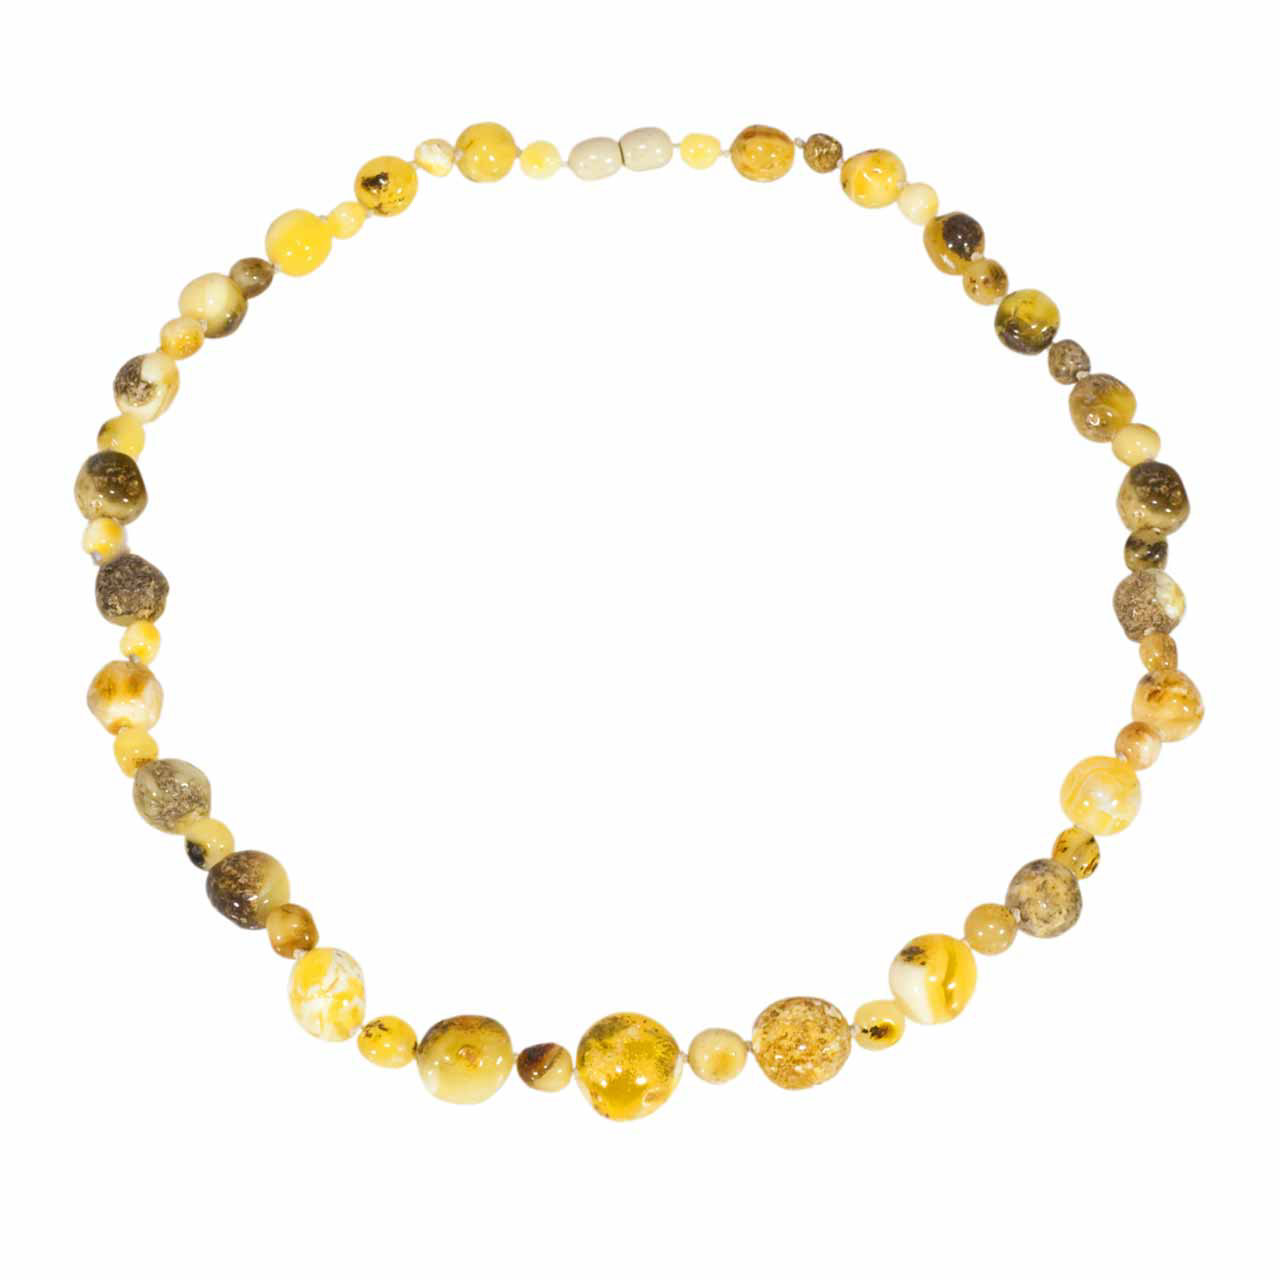 Amber Beads For Teething And Healing